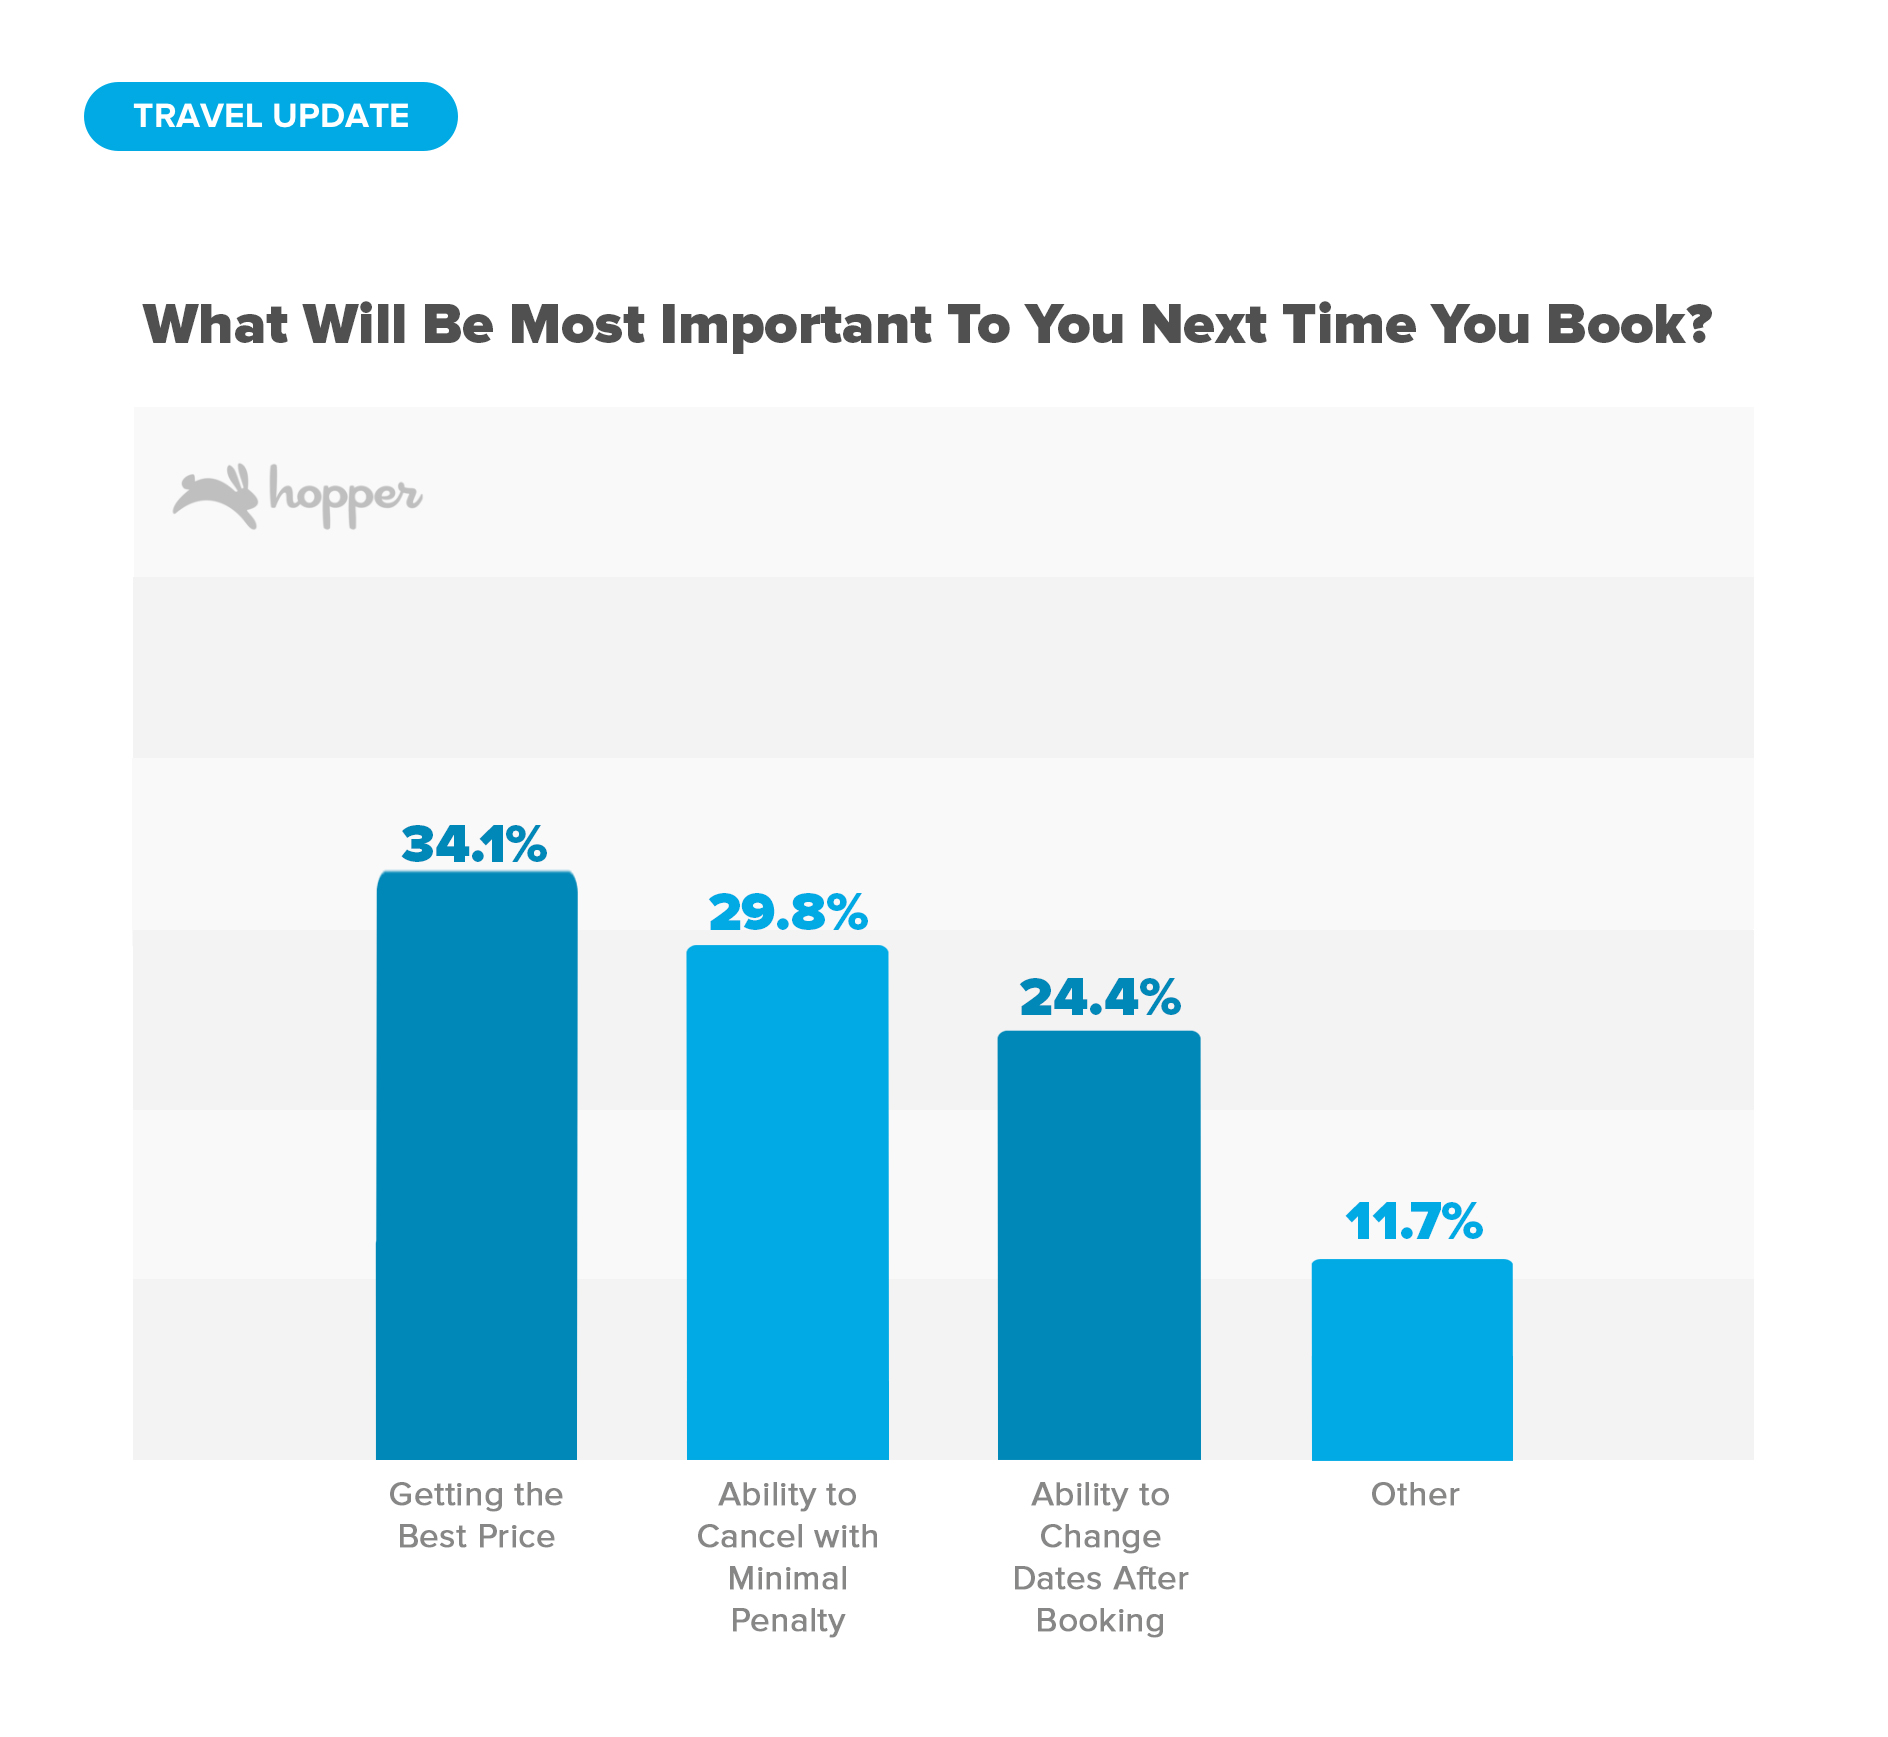 What Will Be Most Important To You Next Time You Book?